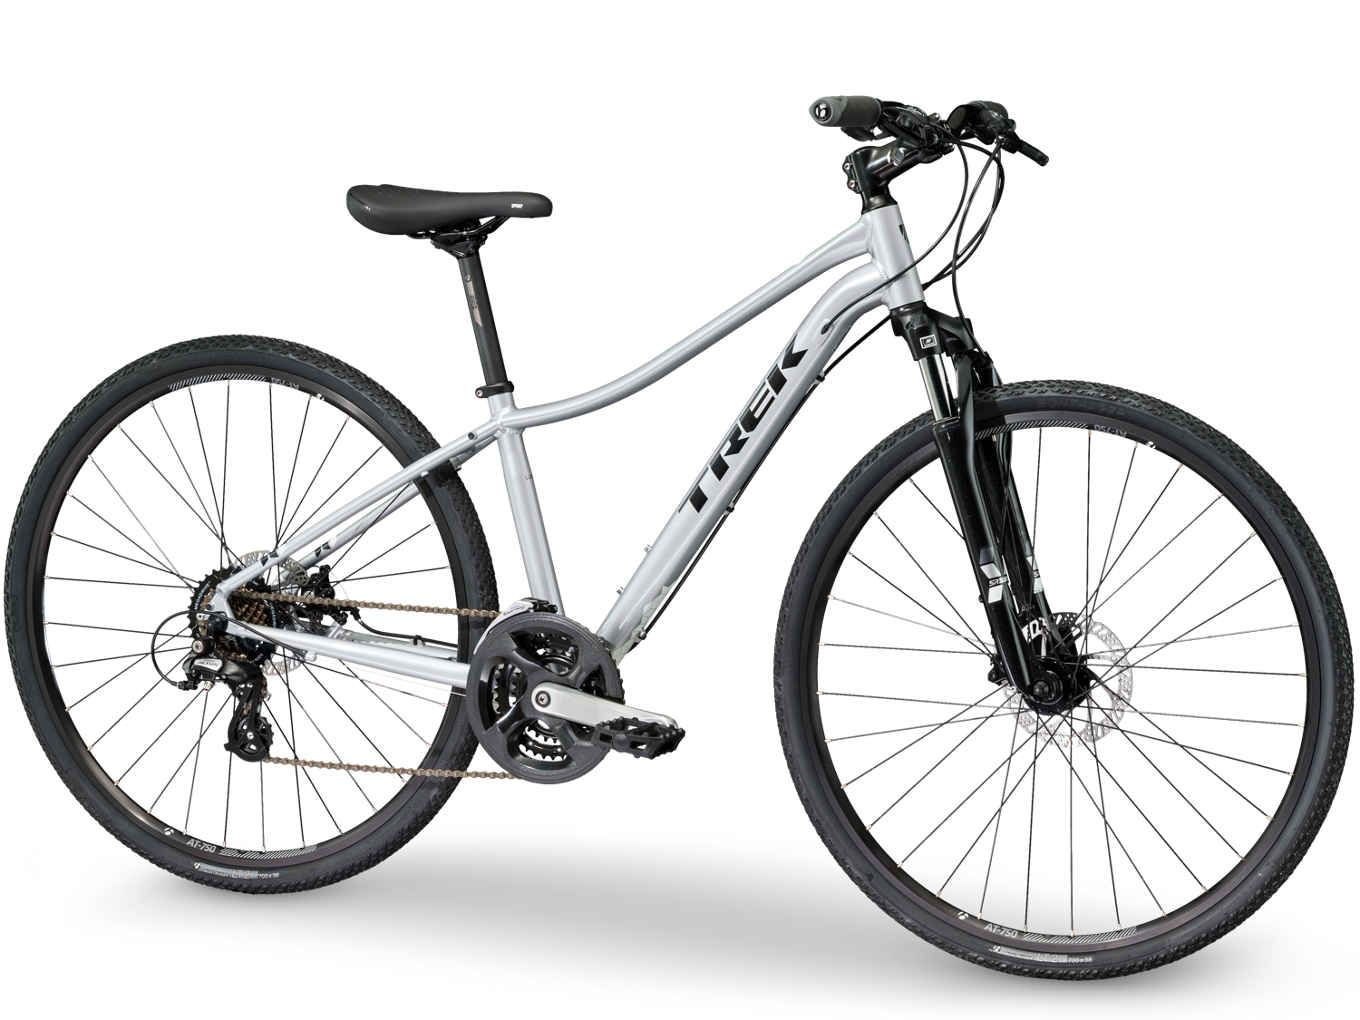 Neko 1 Women S Trek Bikes Nz Trek Bikes Bike Neko